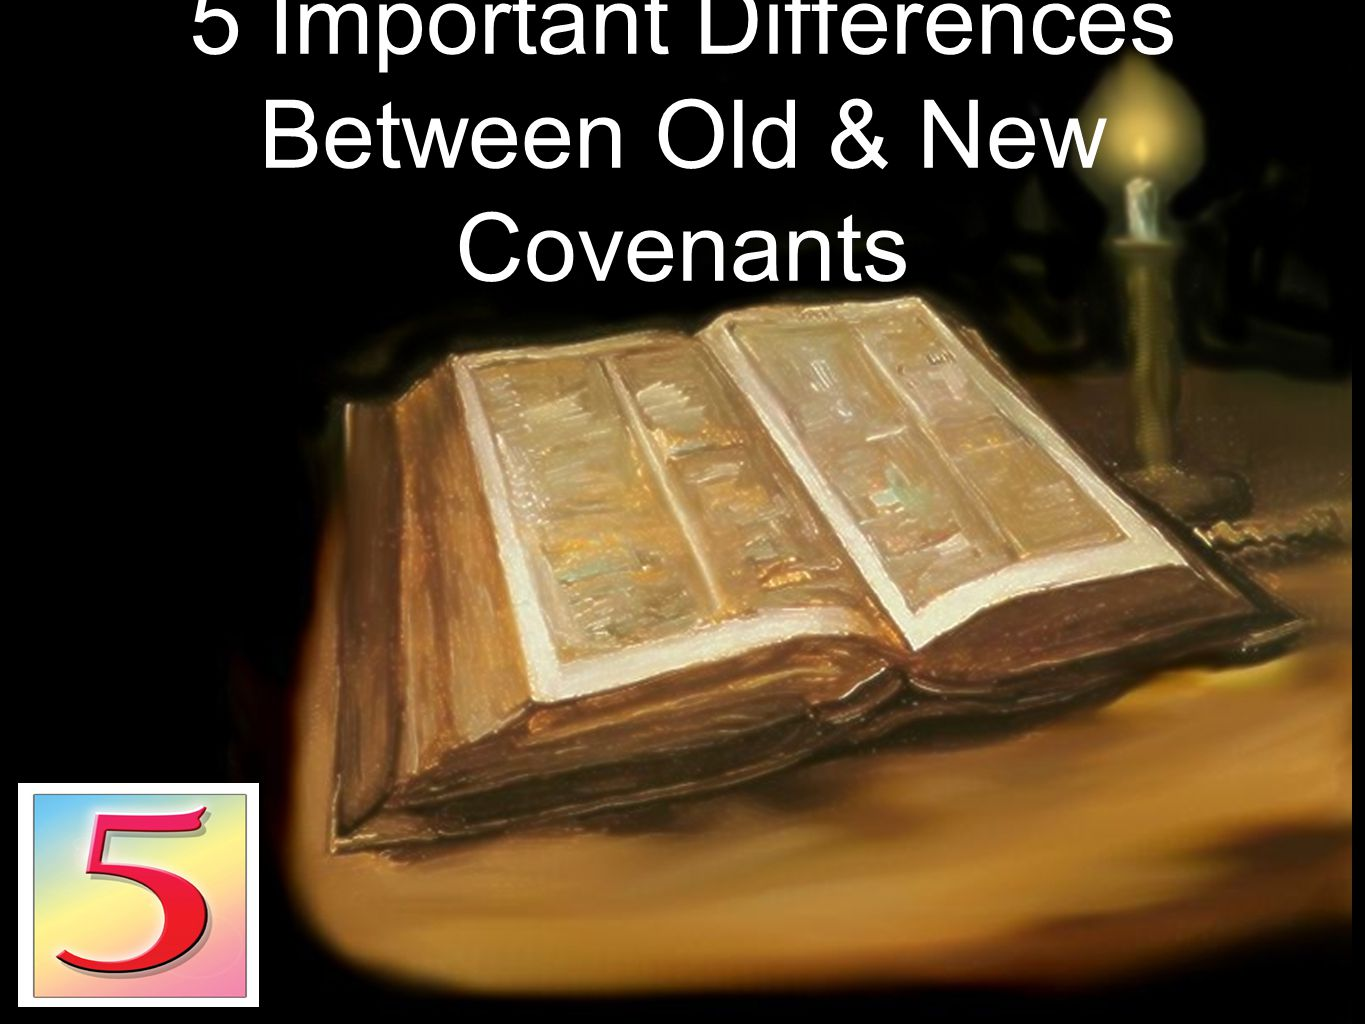 5 Important Differences Between Old & New Covenants